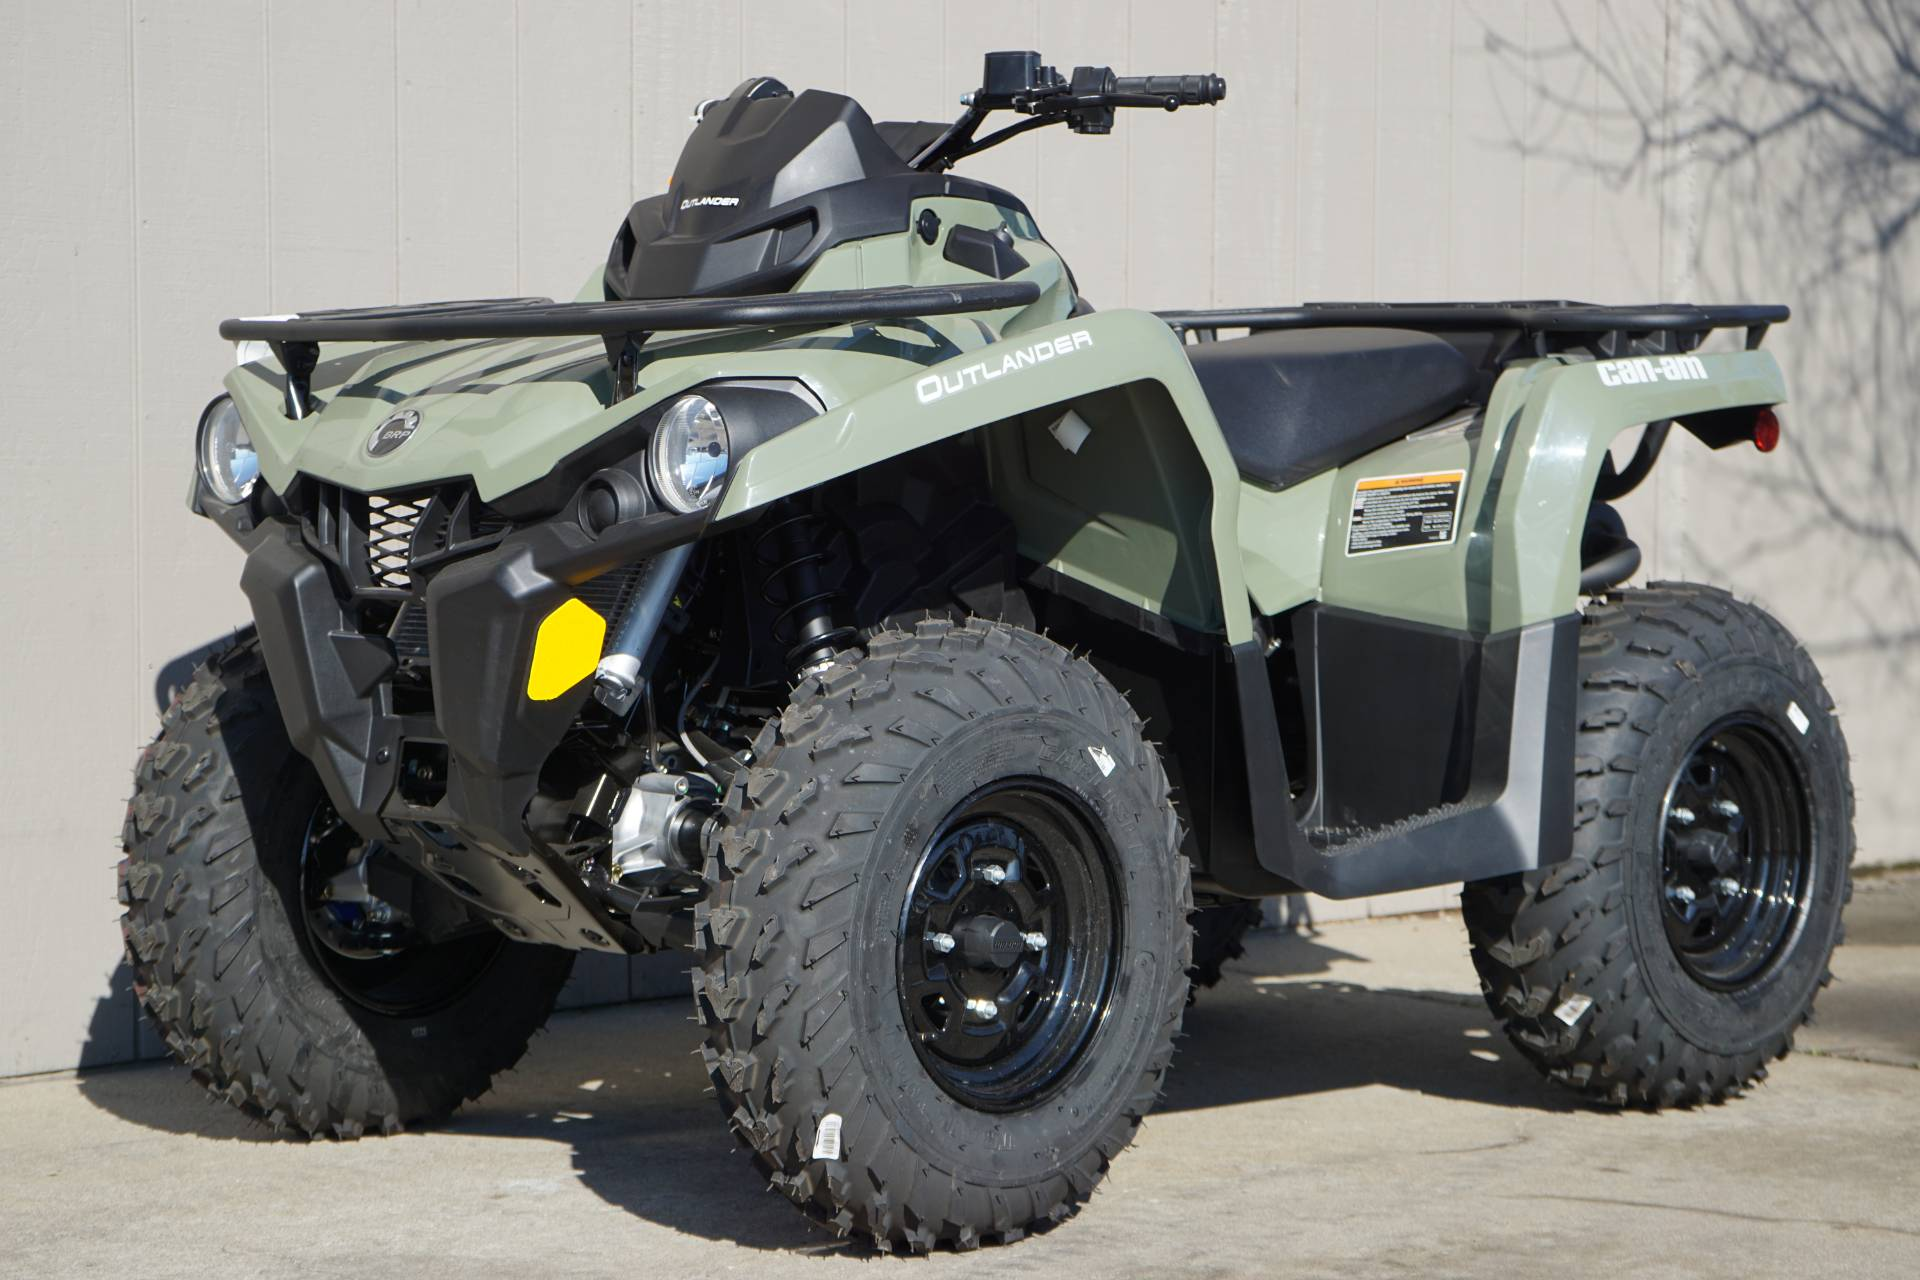 2019 Can-Am Outlander 450 for sale 151193